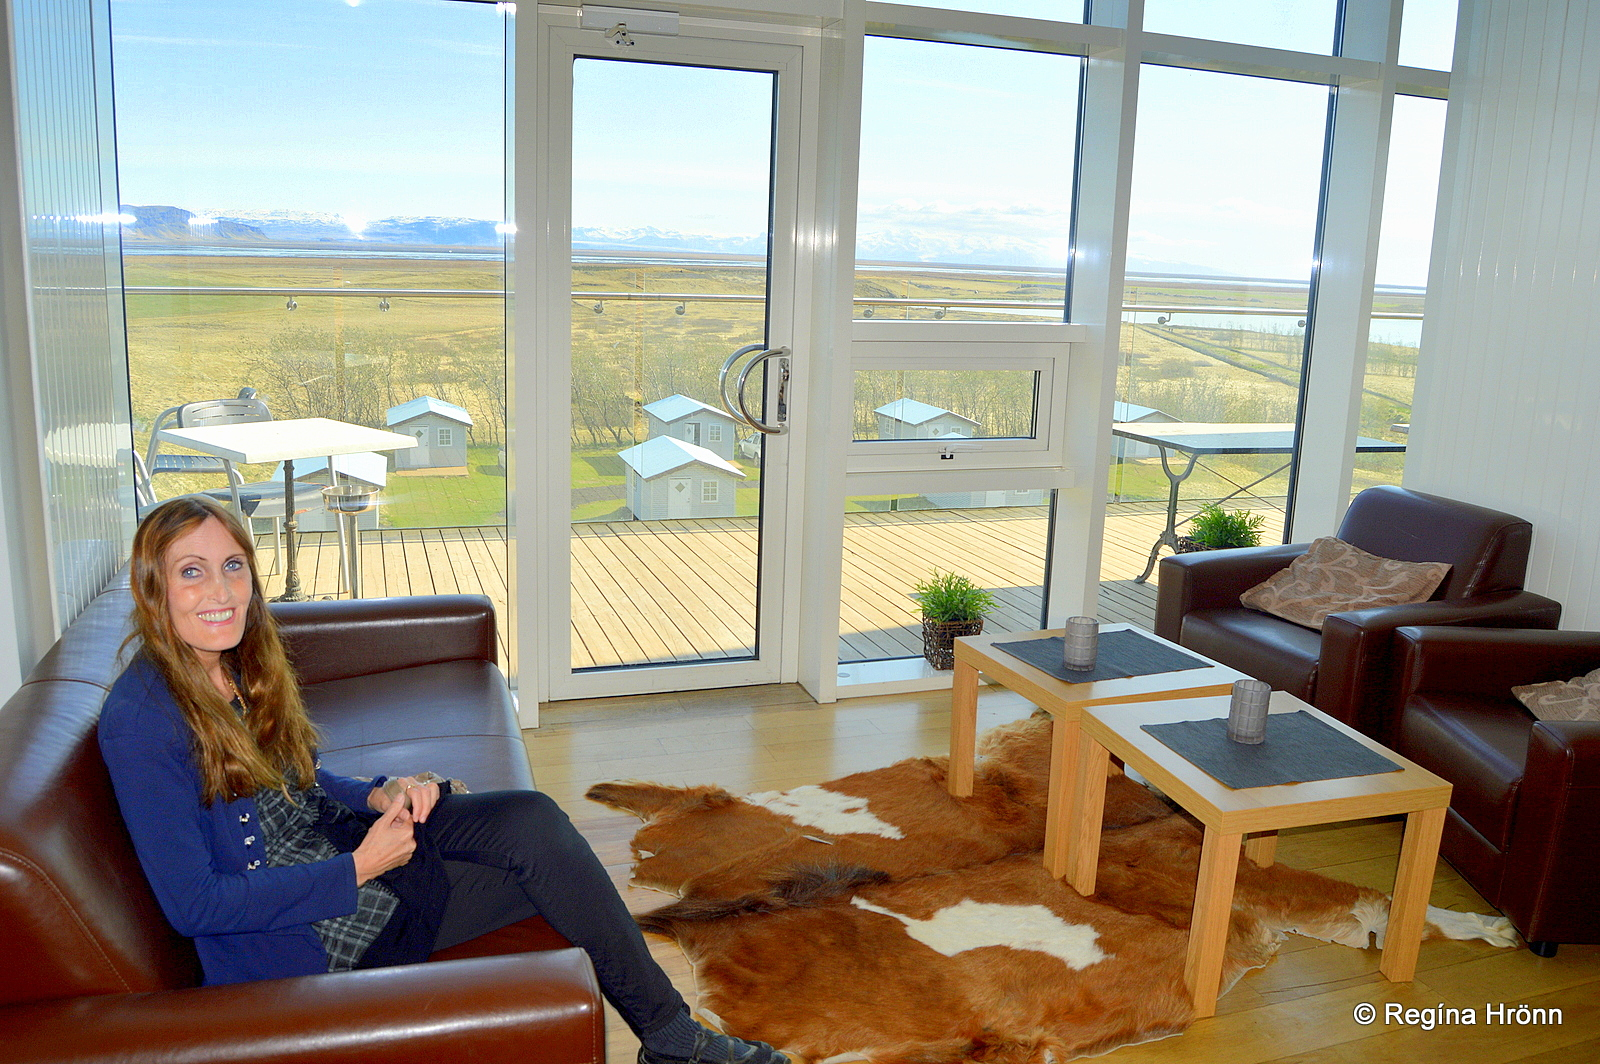 You Can Go Up To The Roof Of Hotel Laki Where There Is A Beautiful View And  A Glasshouse, From Which One Can Watch The Northern Lights On Winter Nights. Awesome Ideas